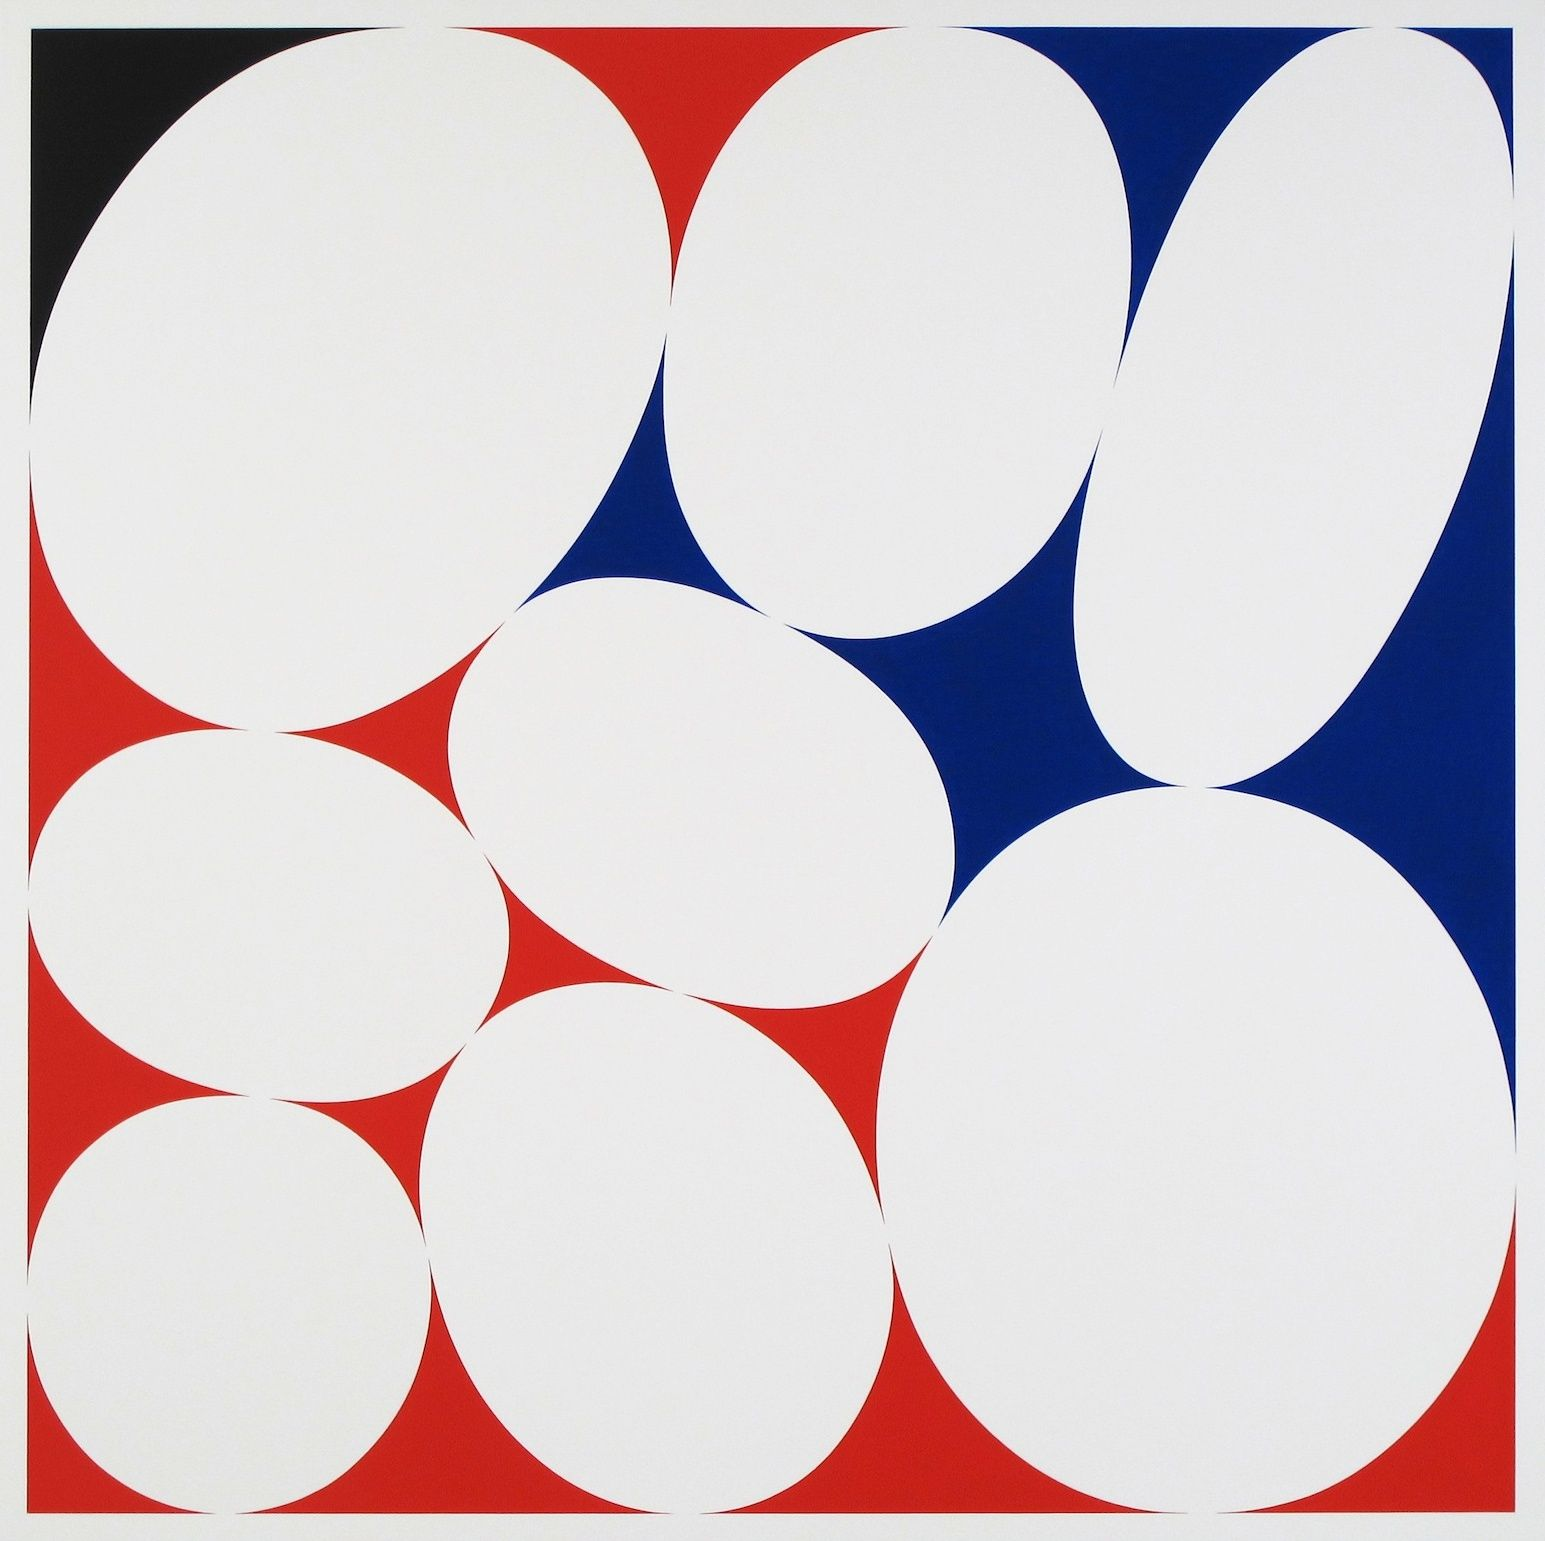 CARY SMITH, Ovals #21 (red-blue-black),2015